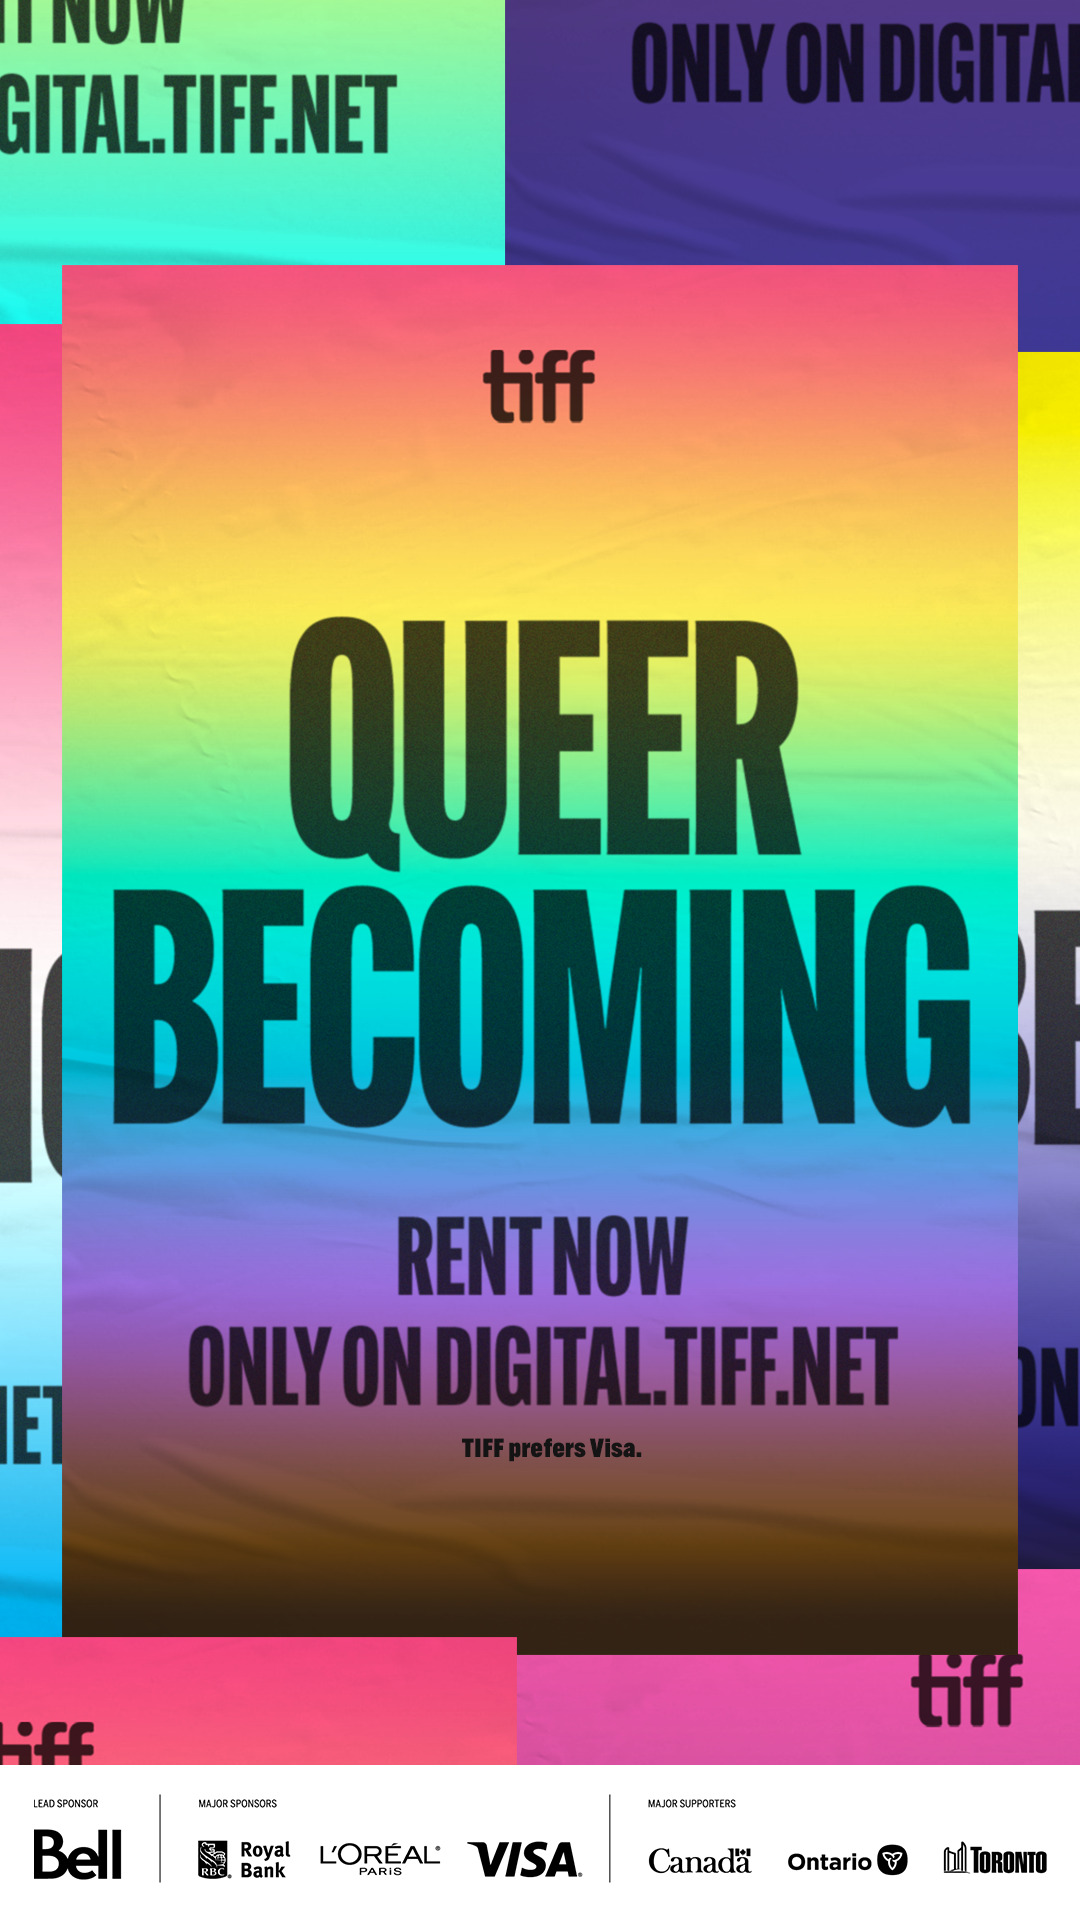 Queer Becoming, Rent Now Only On Digital.Tiff.net